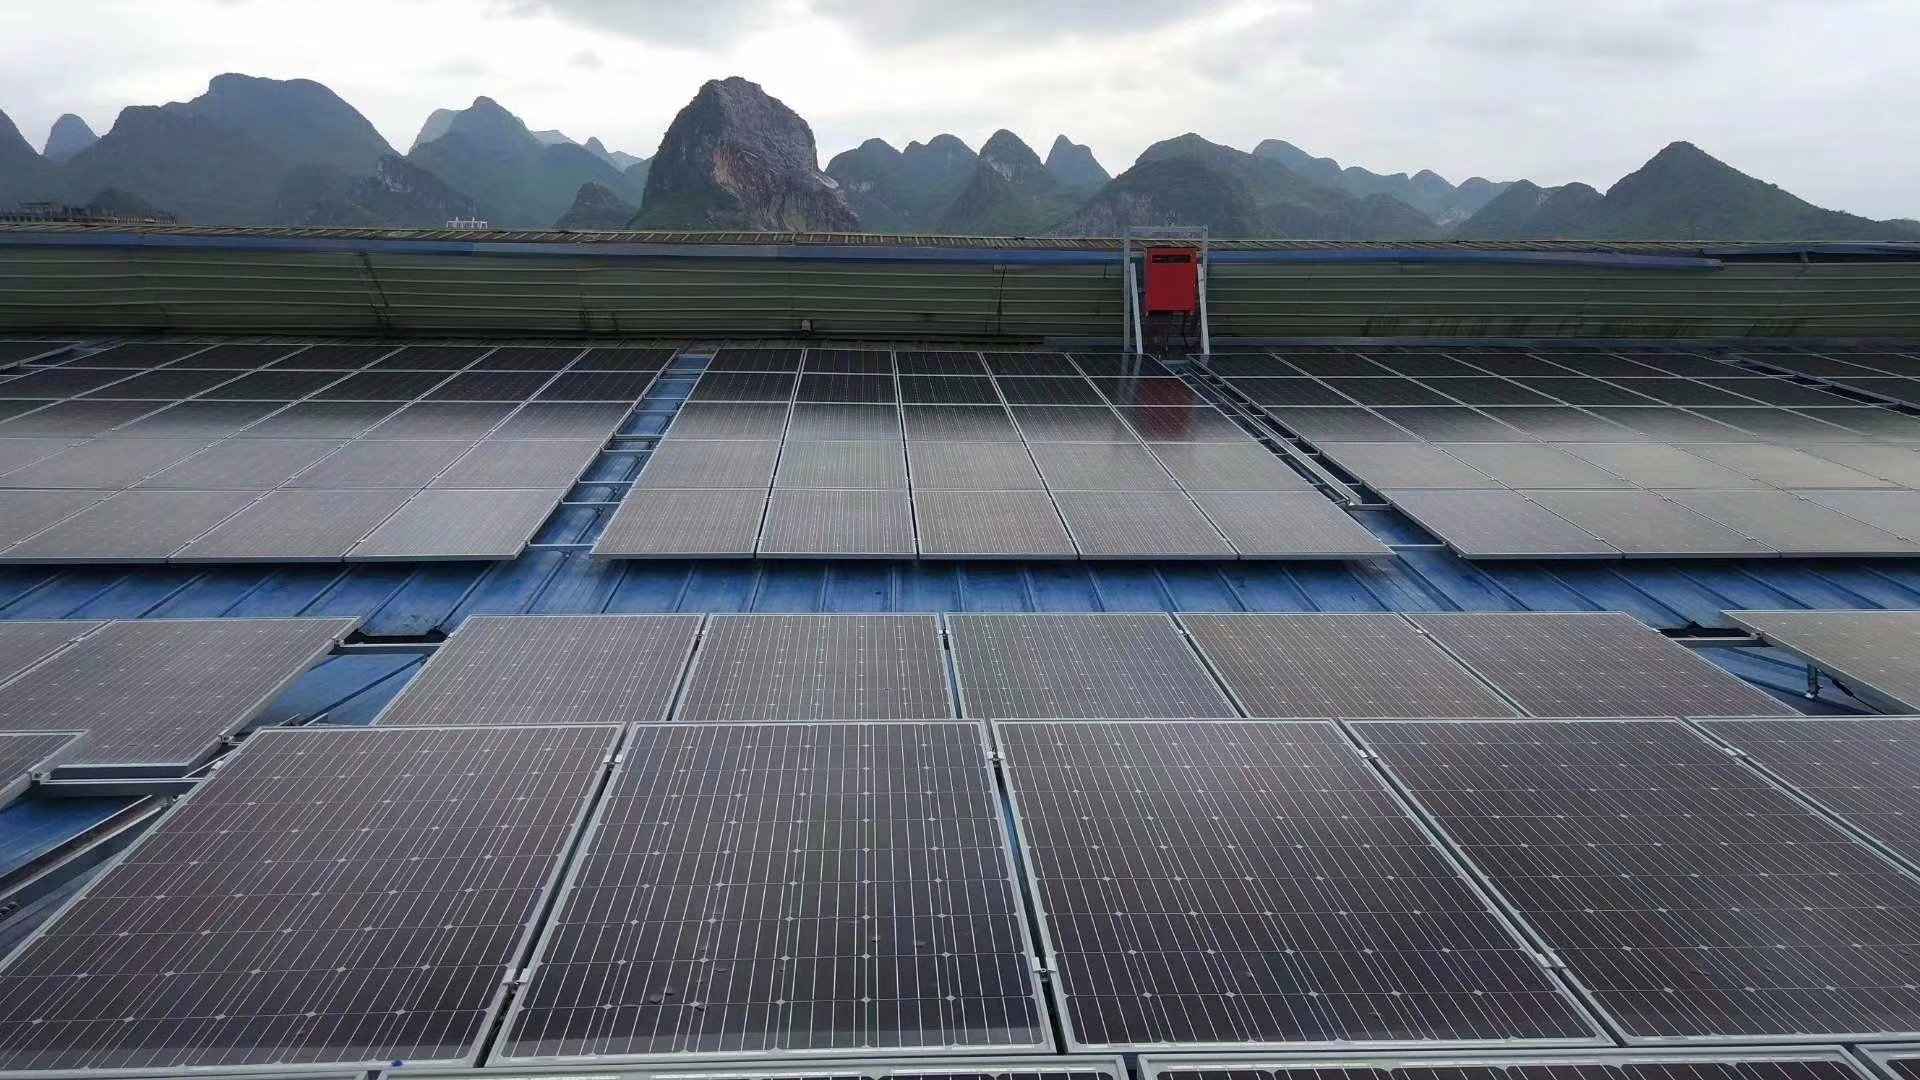 Sales Low Iron Textured Glass, Buy solar cell temper glass, Water heater solar glass Price